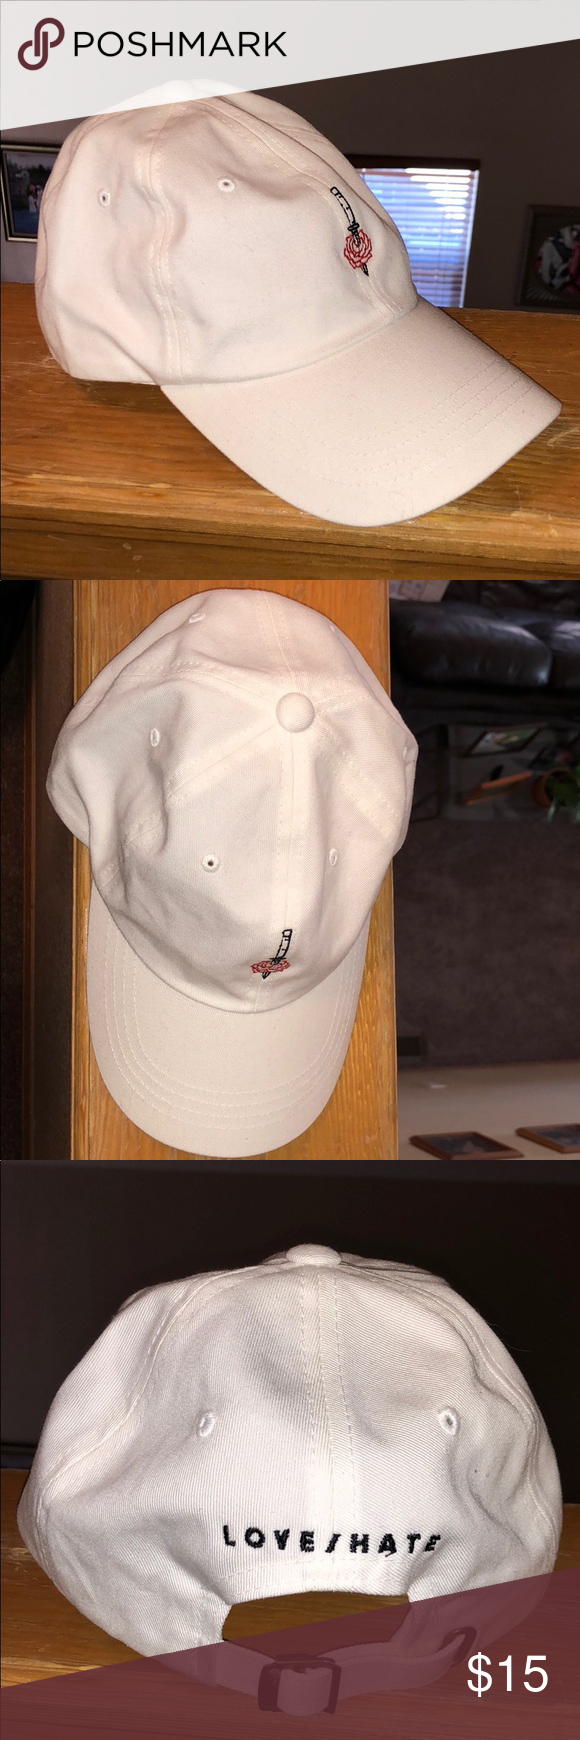 90a4fa1e1fc G-EASY LOVE HATE CAP White G Eazy Love Hate Dad hat Accessories Hats